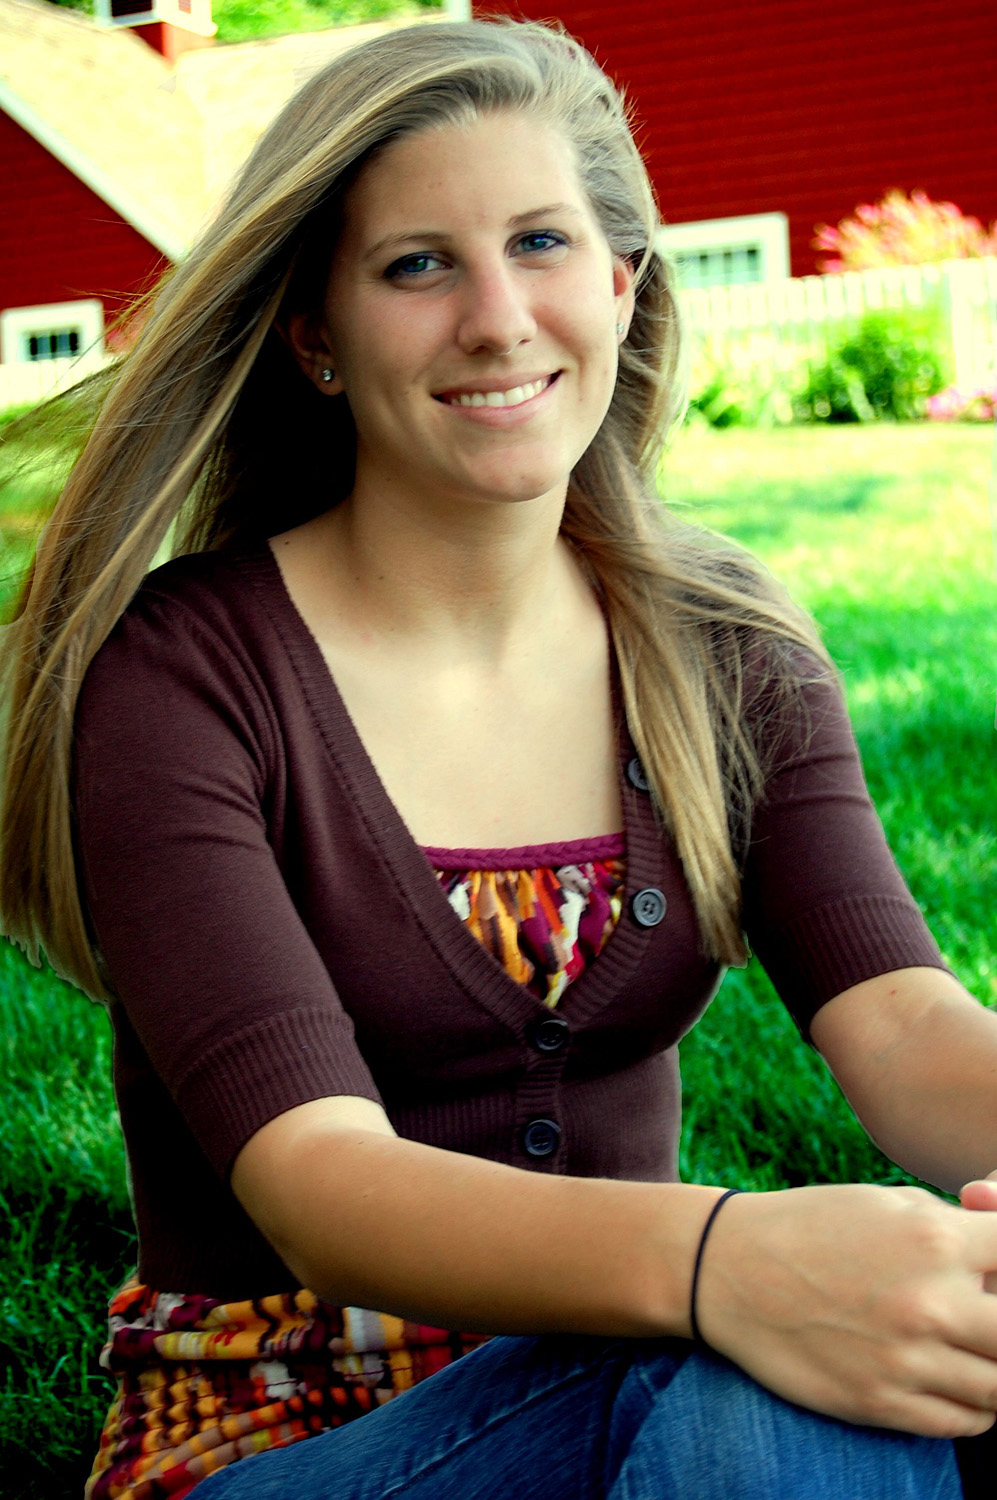 hesston girls Meet hesston (kansas) women for online dating contact american girls without registration and payment you may email, chat, sms or call hesston ladies instantly.